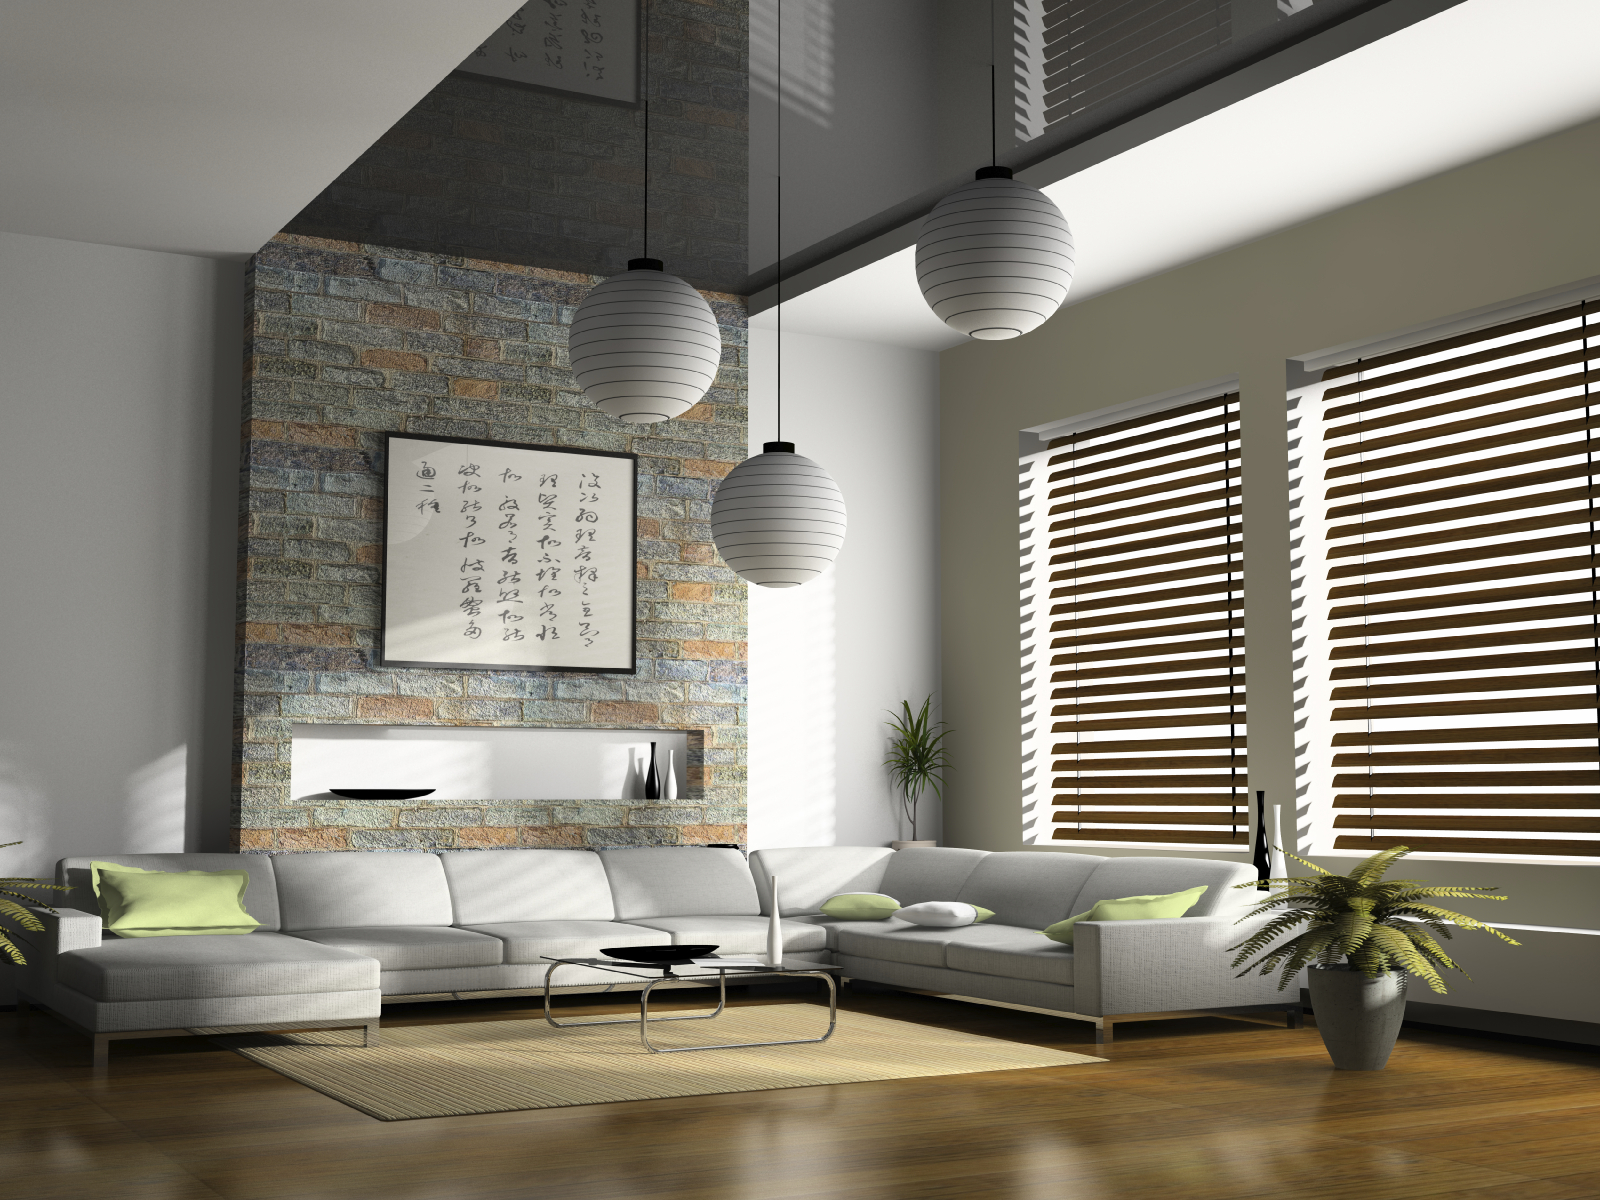 touch cordless shade blinds filters light pin warm curtains adding gently a window bamboo or this